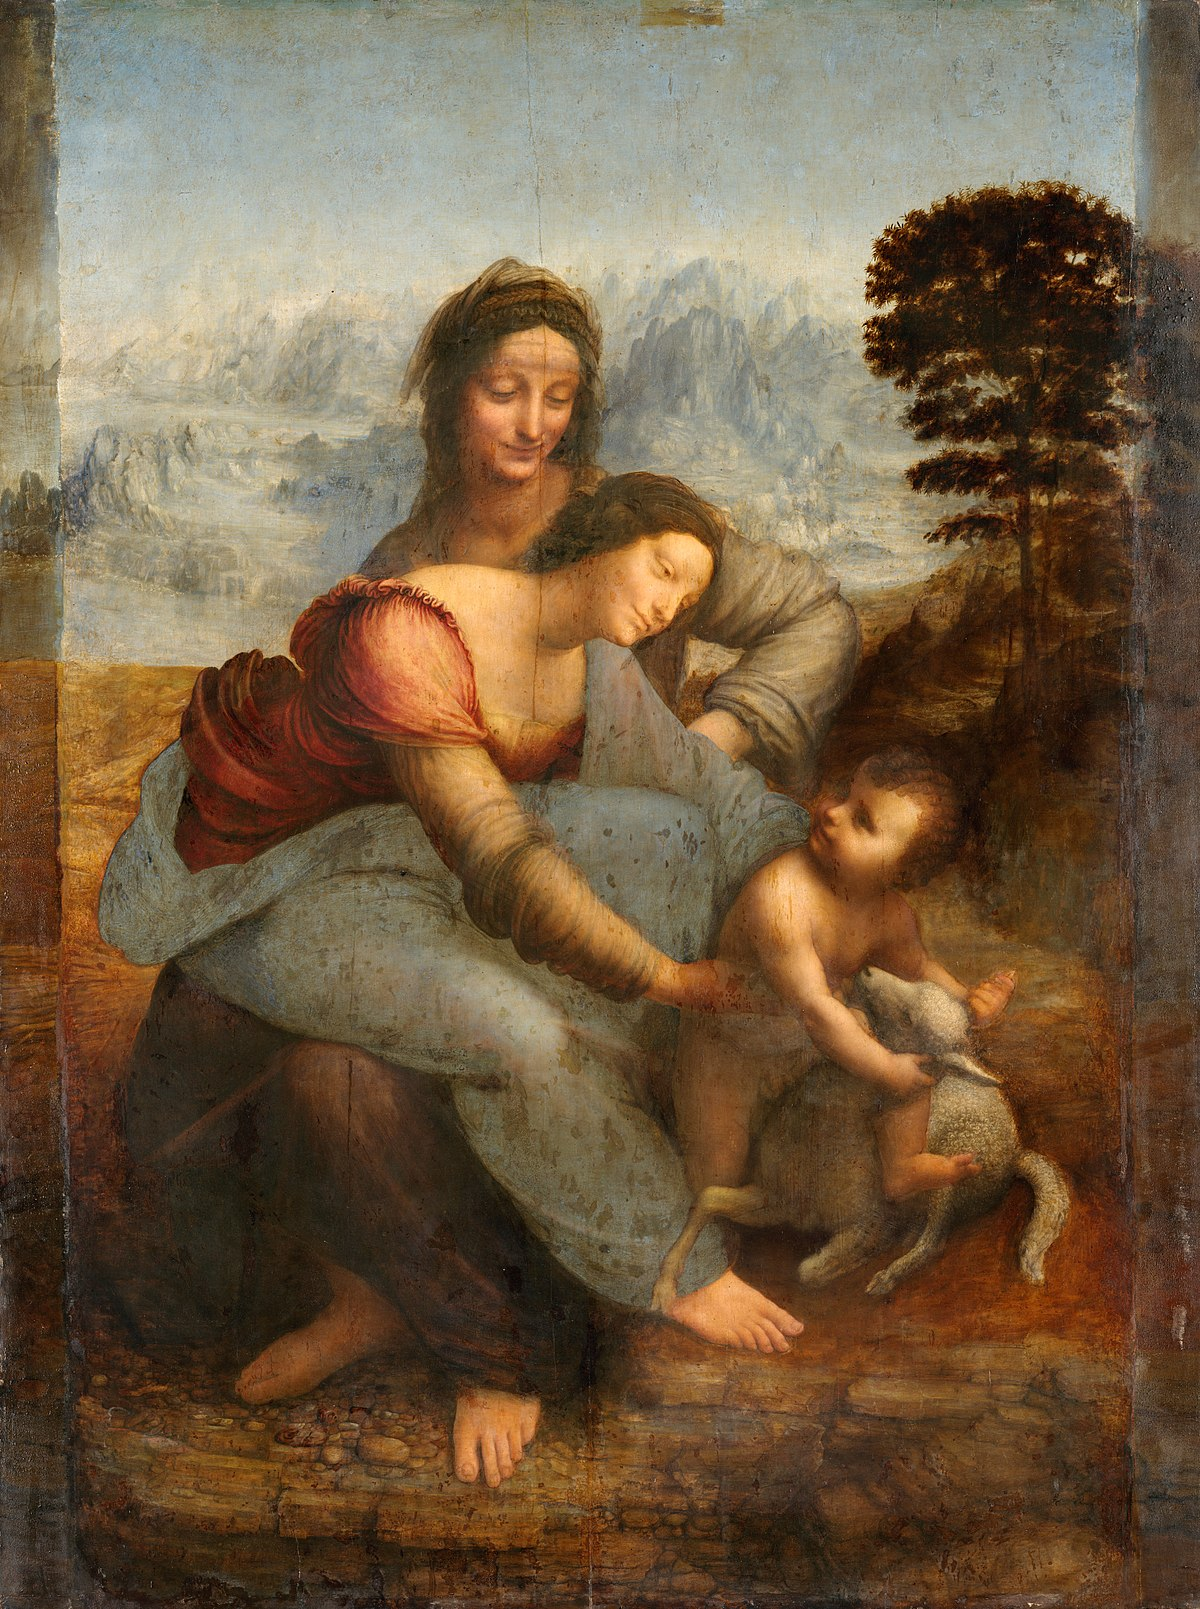 Leonardo_da_Vinci_-_Virgin_and_Child_with_St_Anne_